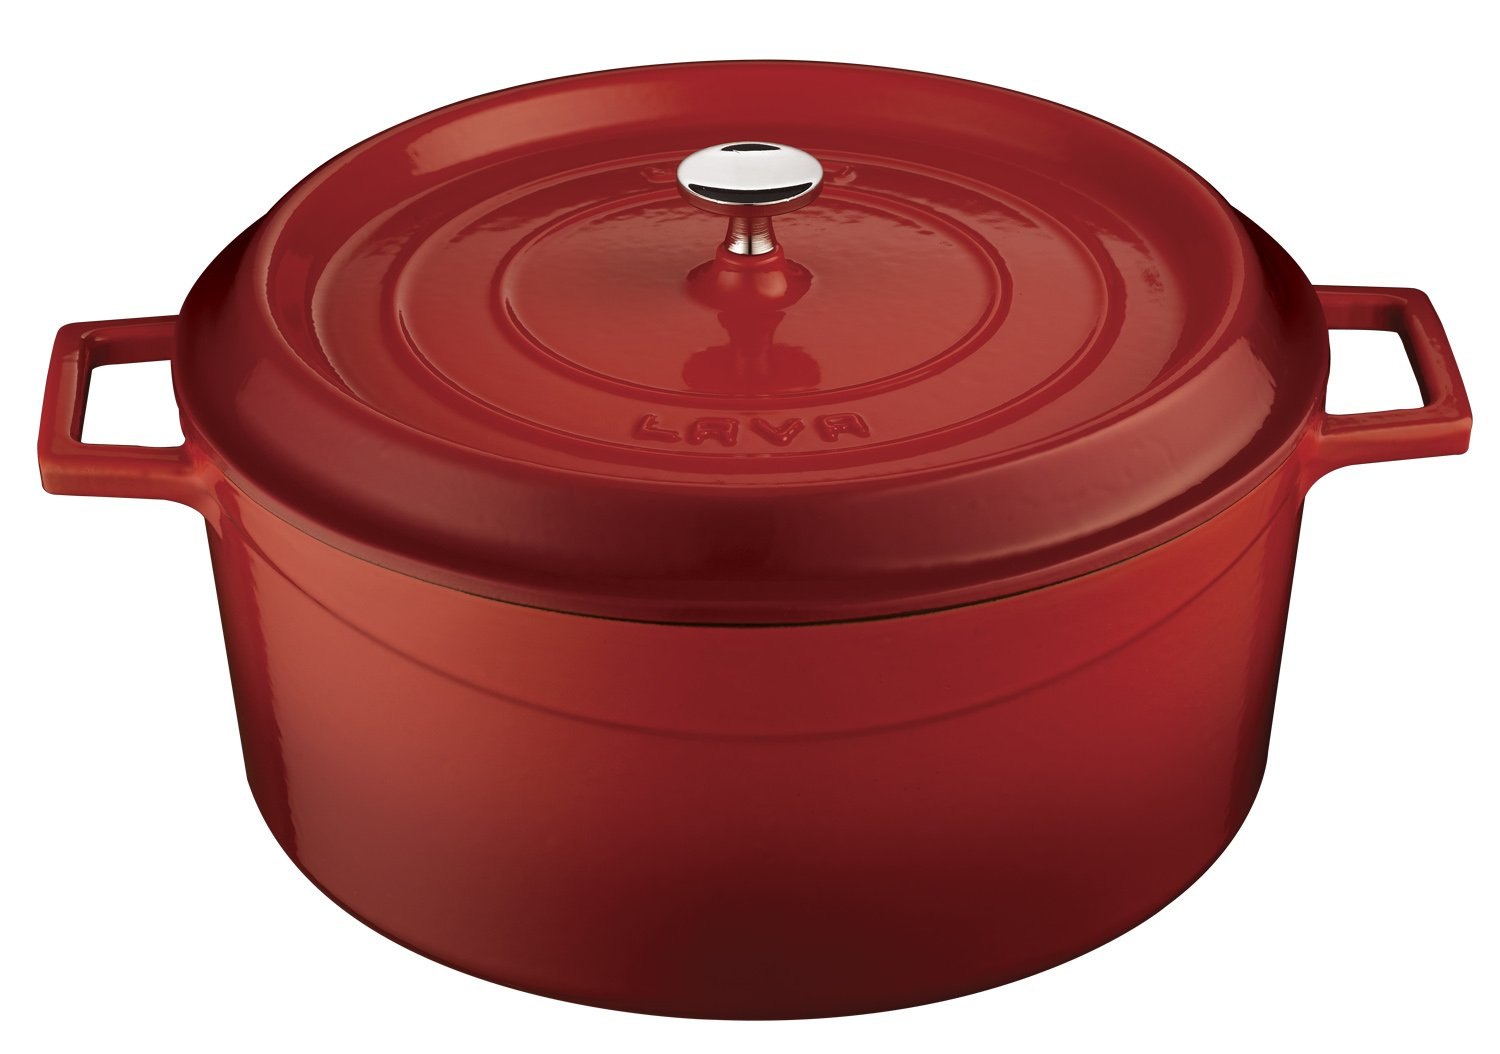 Lava Signature Enameled Cast-Iron Round Dutch Oven - 10-1/2 Quart, Cayenne Red